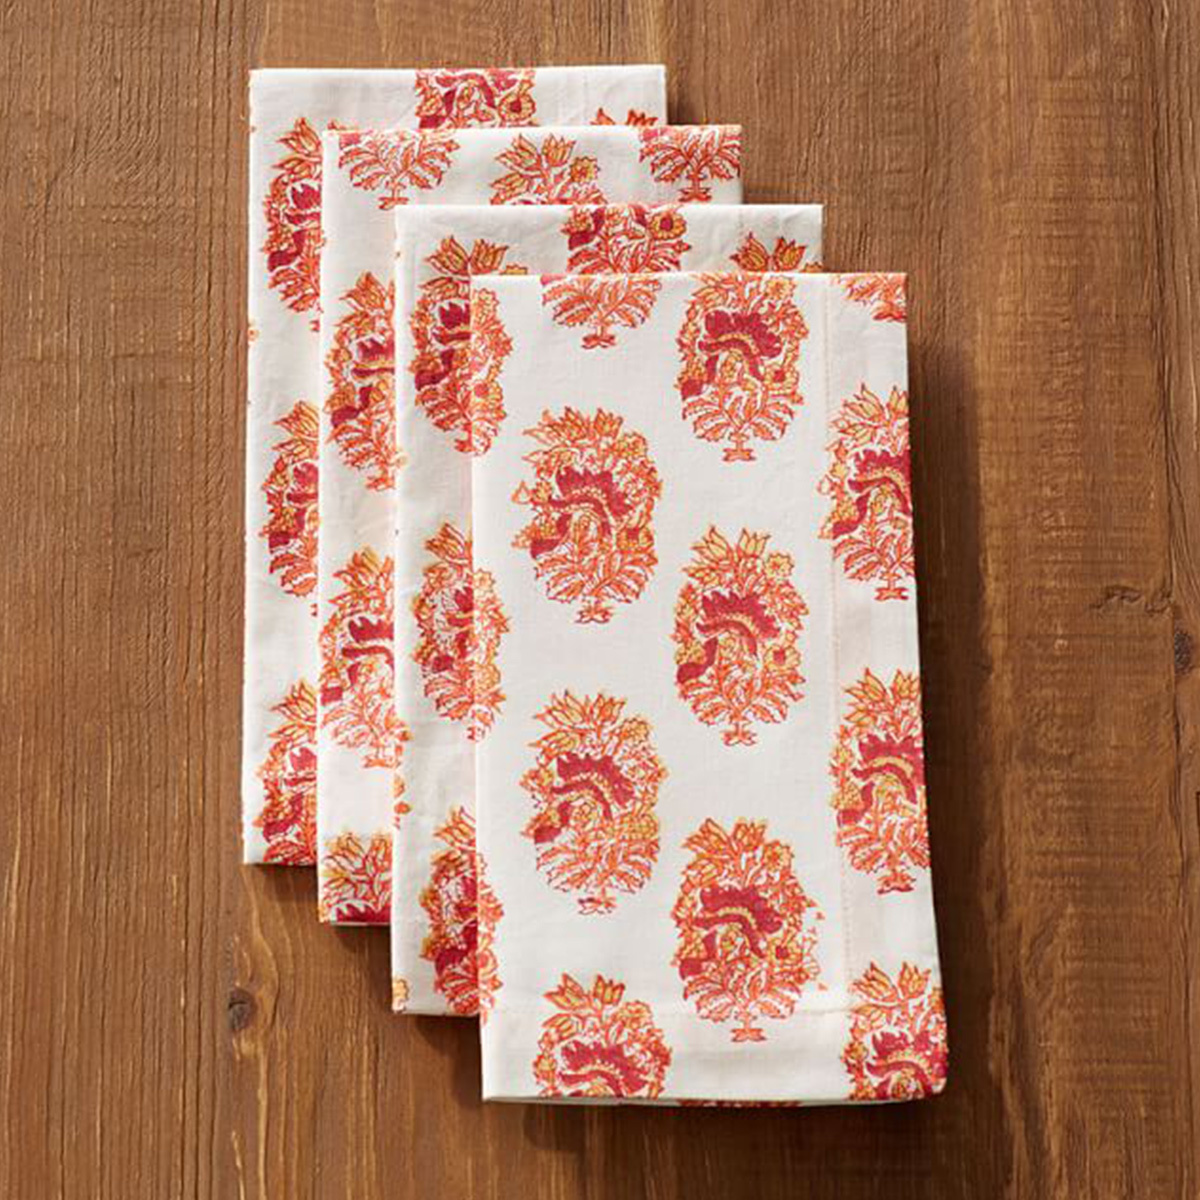 White cloth napkins with a red, orange and pink print on them photo